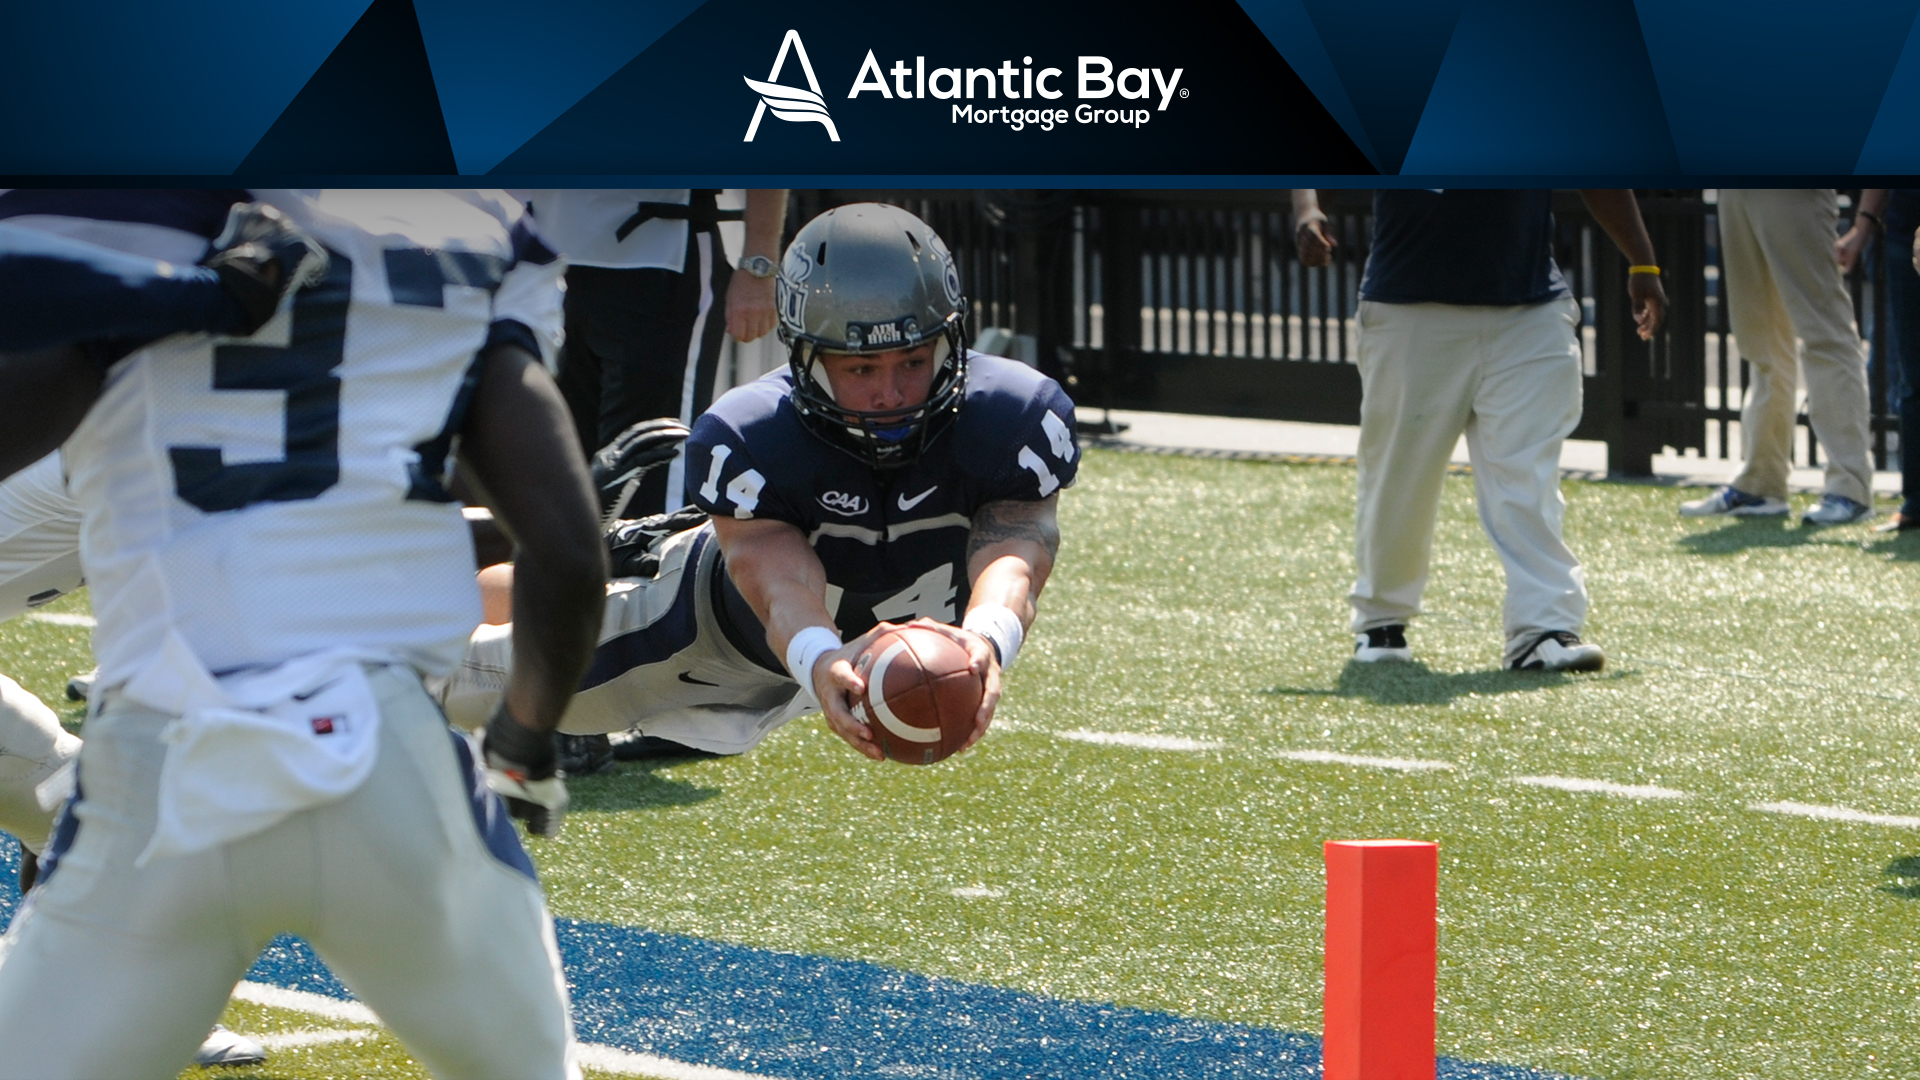 Minium Taylor Heinicke Is Returning To Odu To Finish His Degree And Perhaps Help The Monarch Football Team Old Dominion University